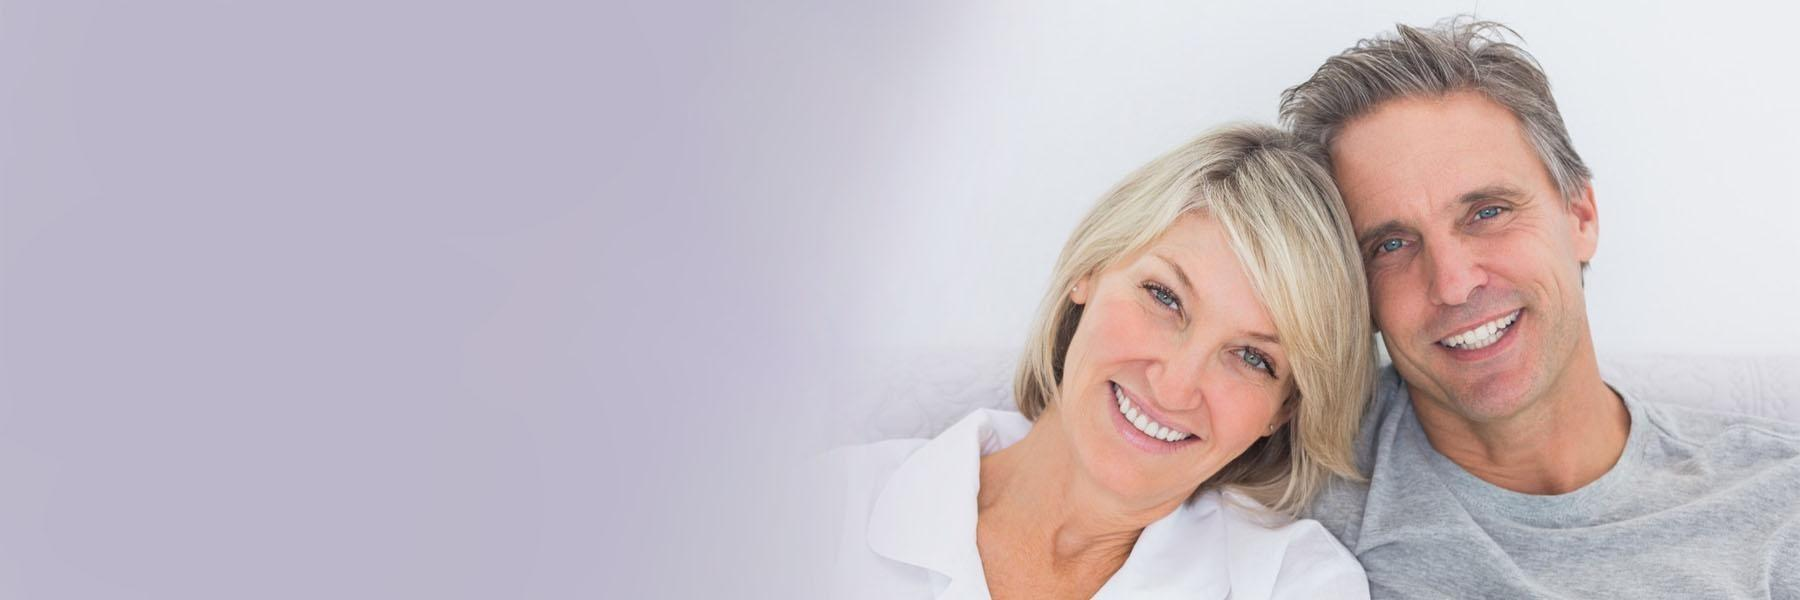 Dentures and Partial Dentures in Houston banner image